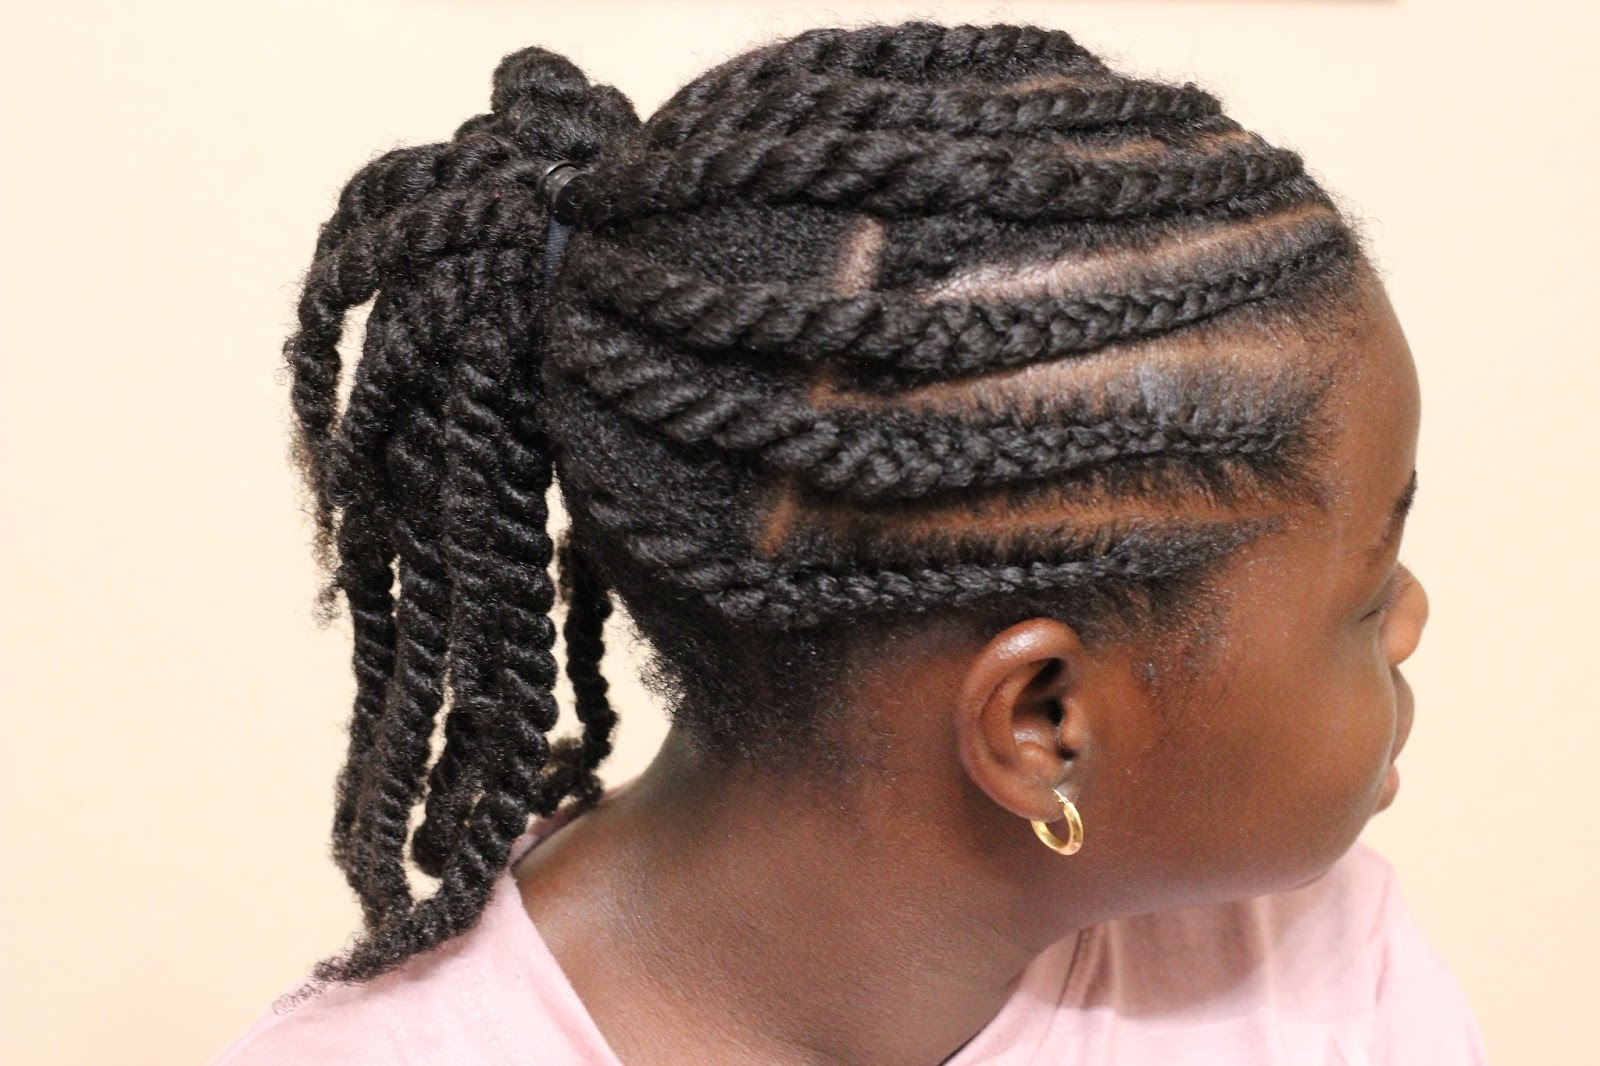 Discoveringnatural Natural Hairstyles For Teen Girls Using